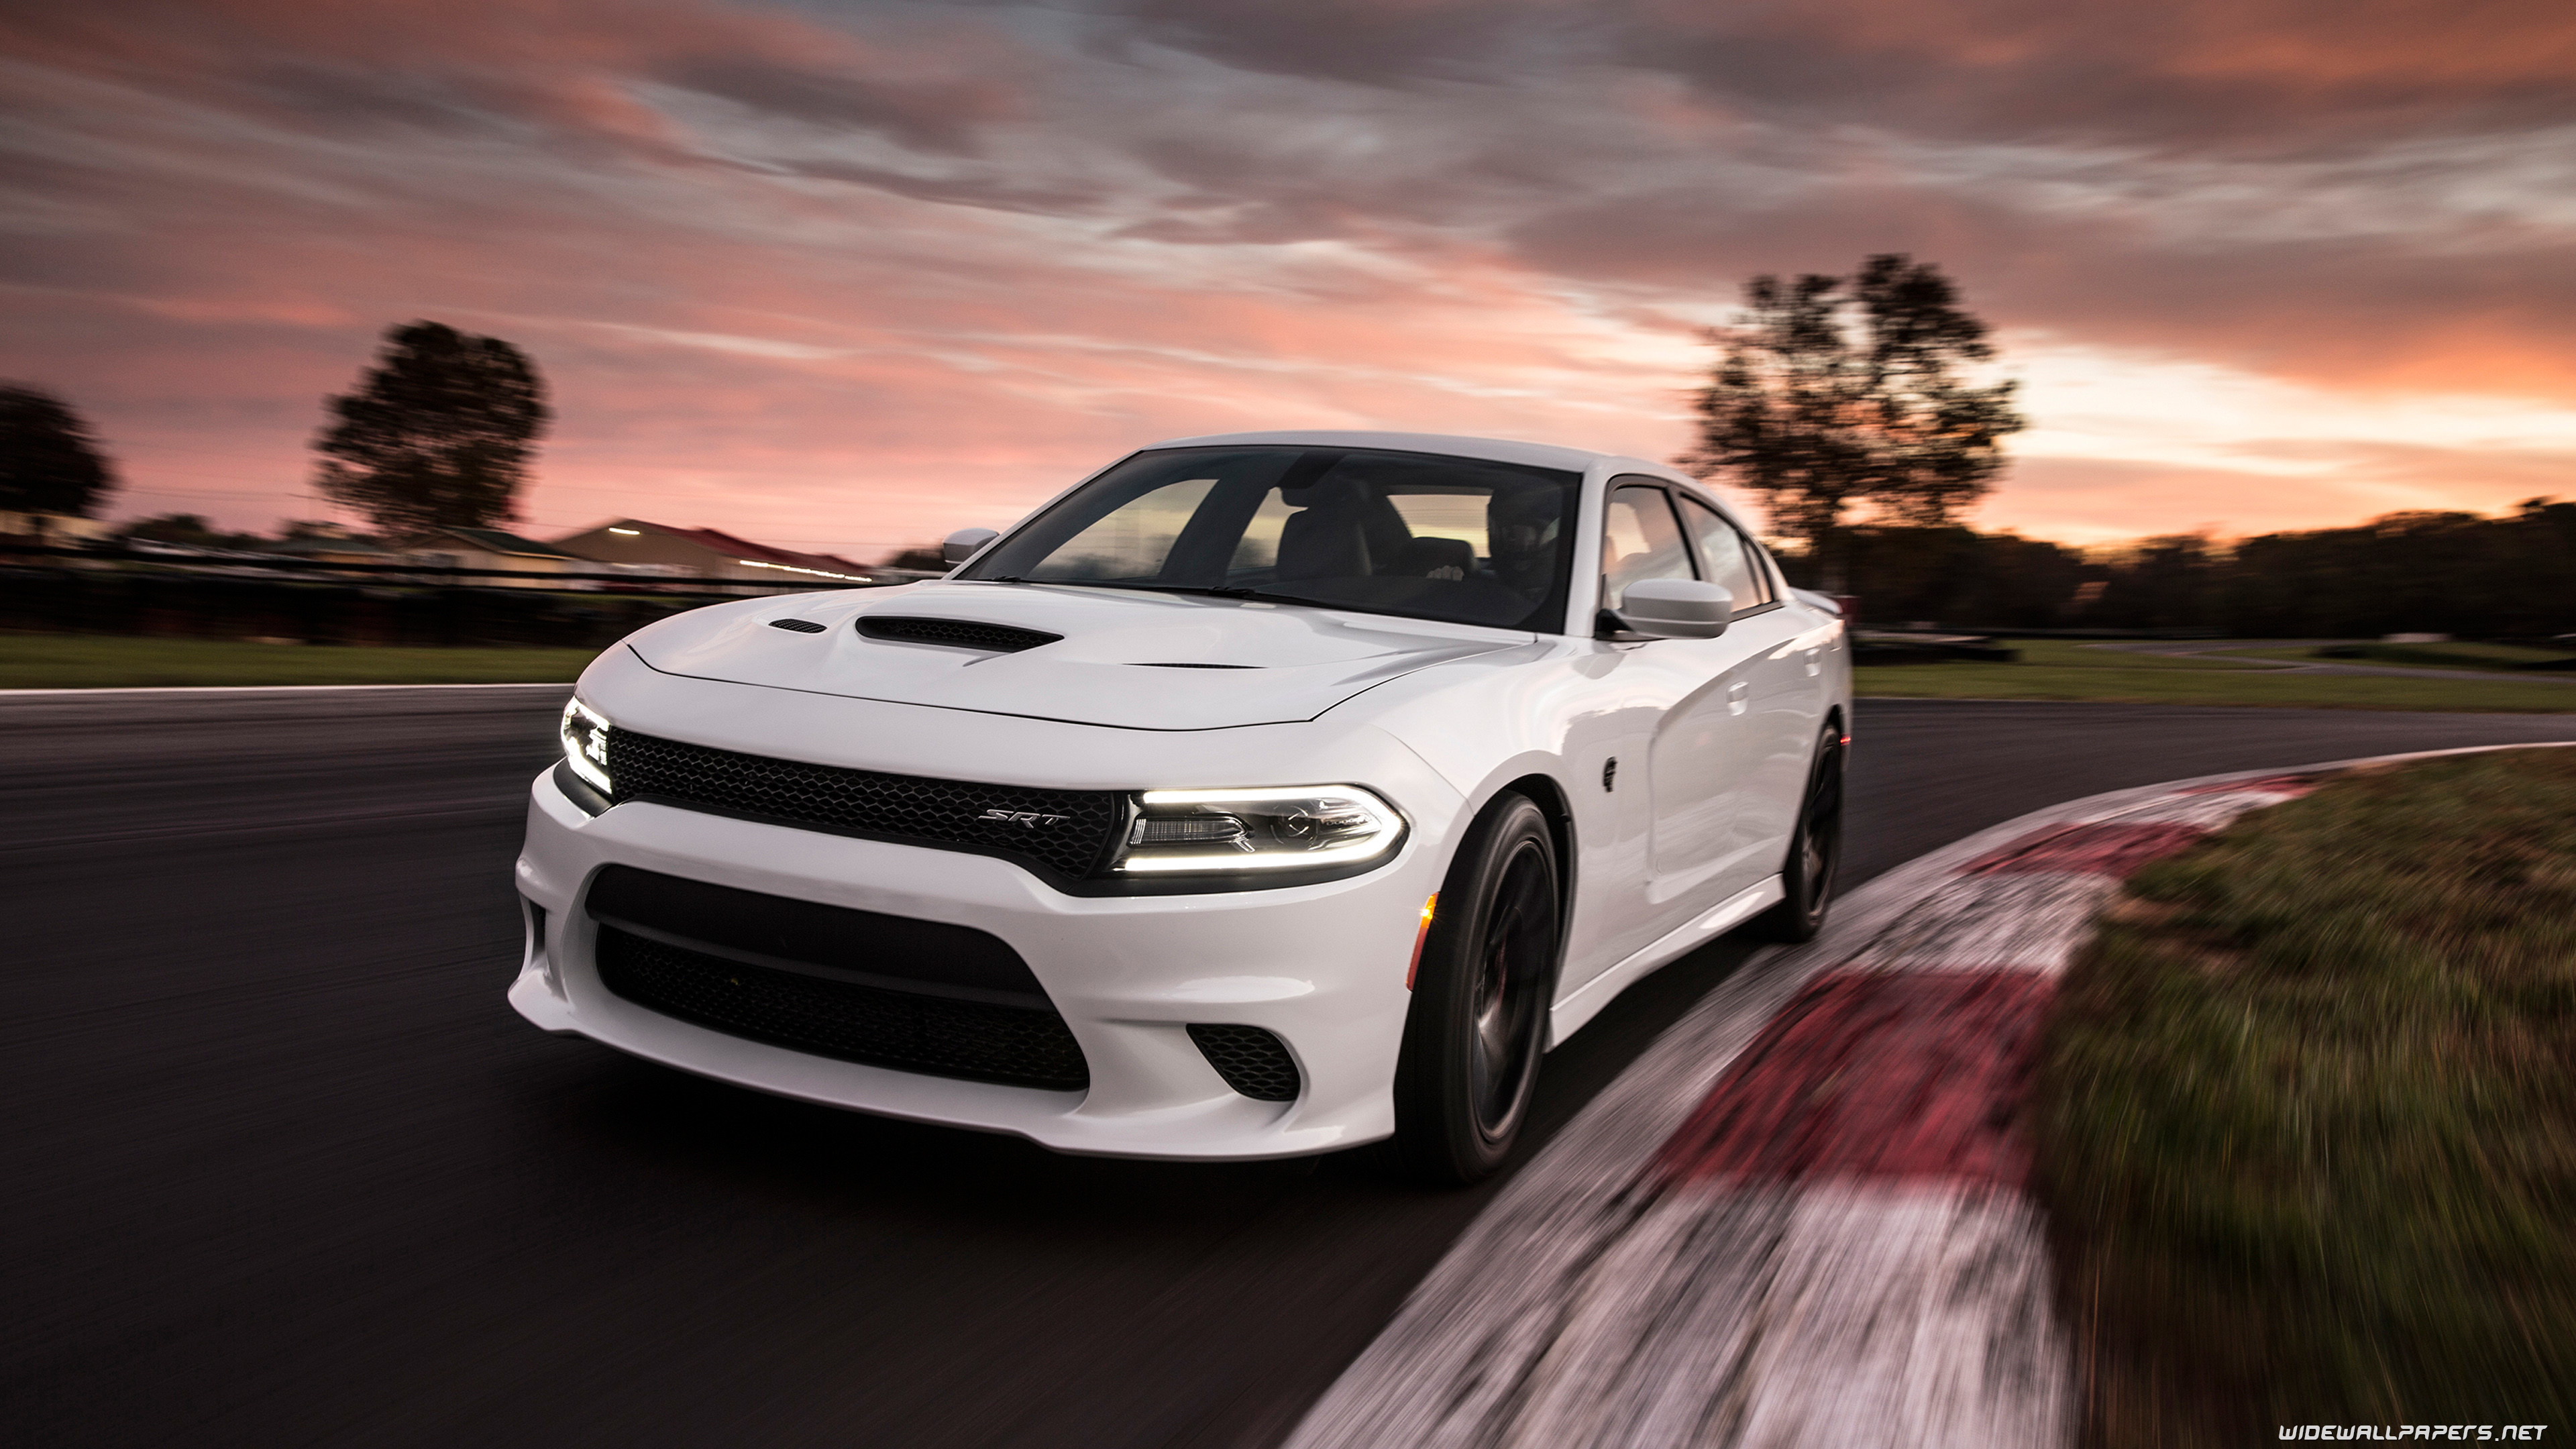 Res: 3840x2160, good dodge charger srt hellcat car wallpapers with dodge charger hellcat  wallpaper